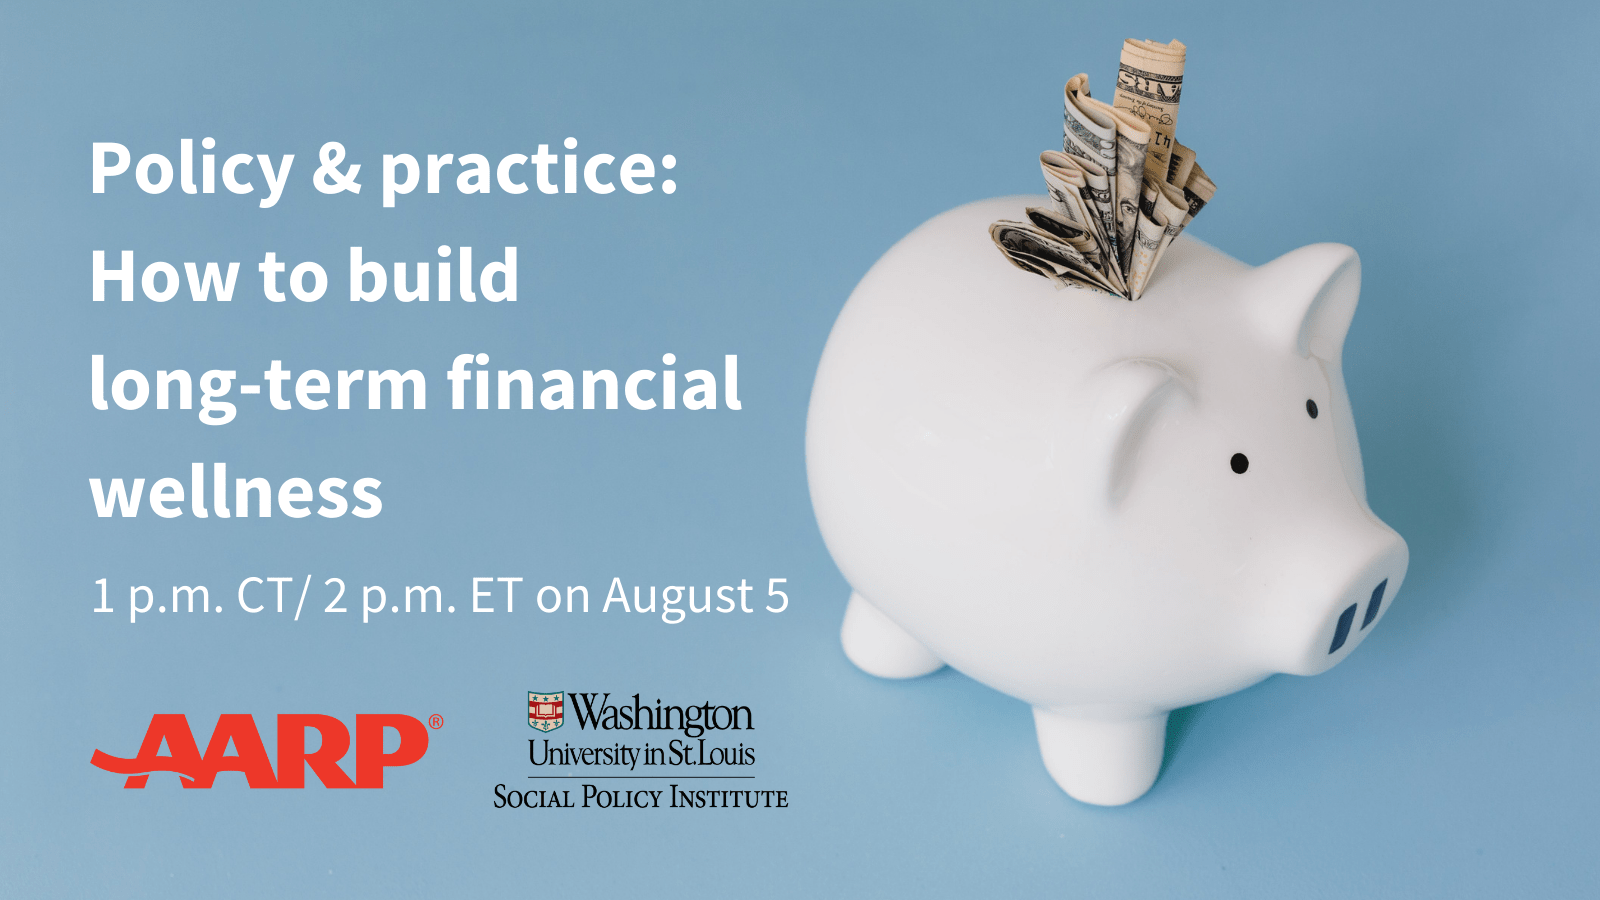 Policy & practice: How to build long-term financial wellness